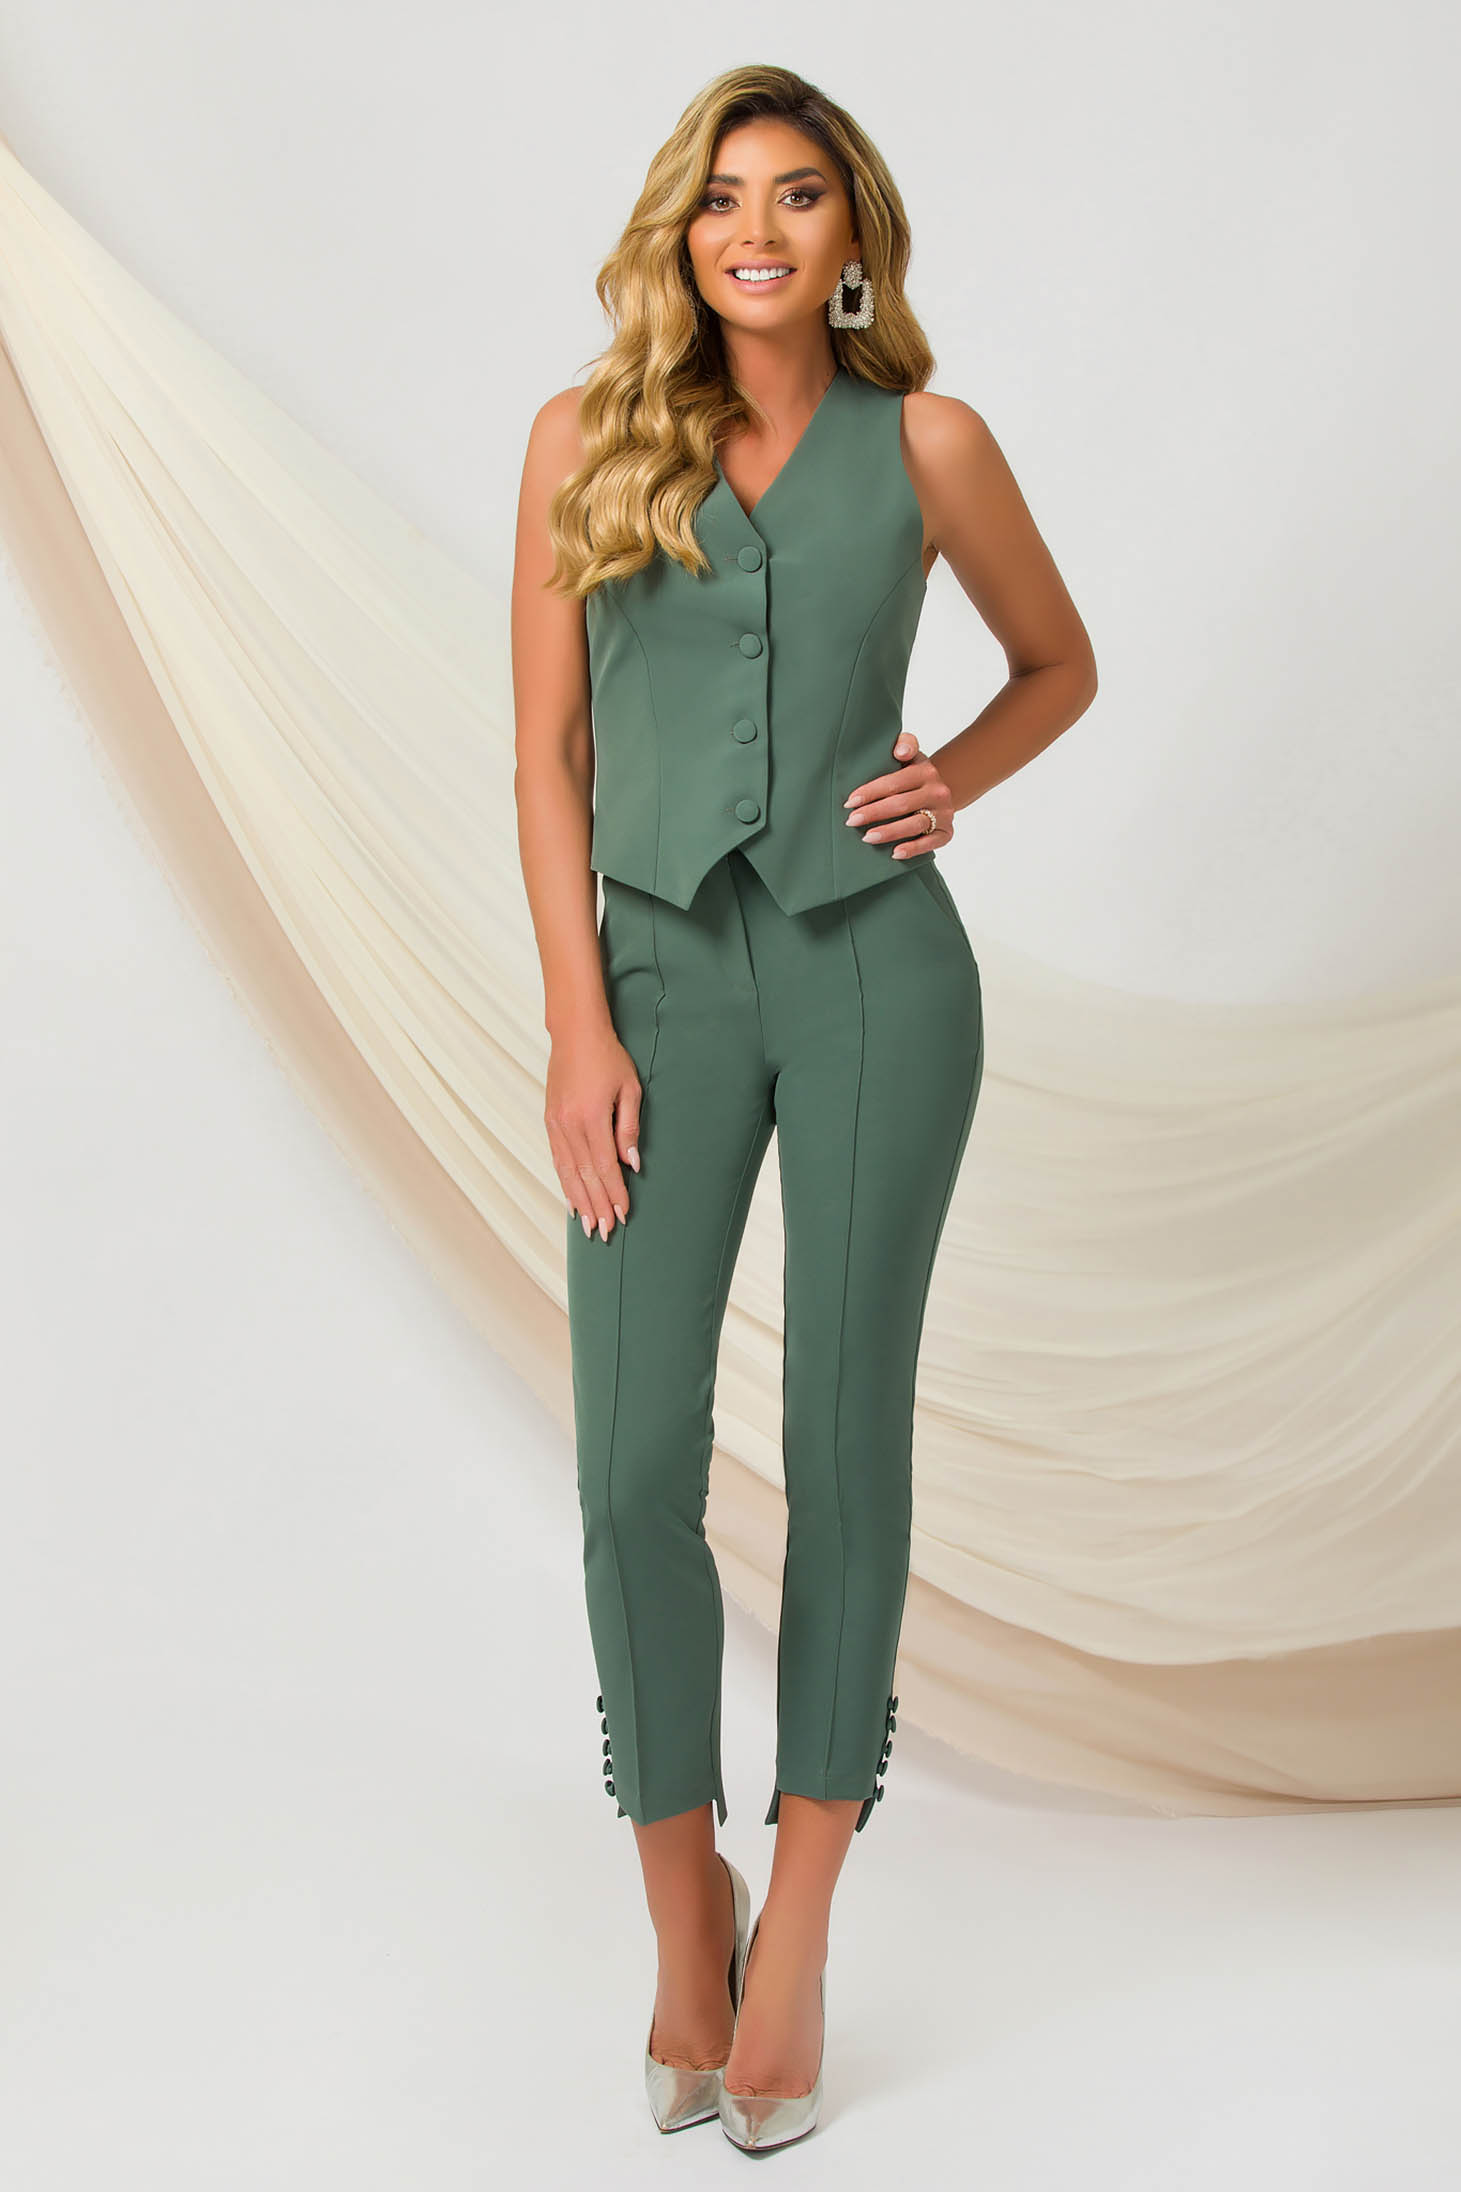 Green trousers office conical slightly elastic fabric with button accessories